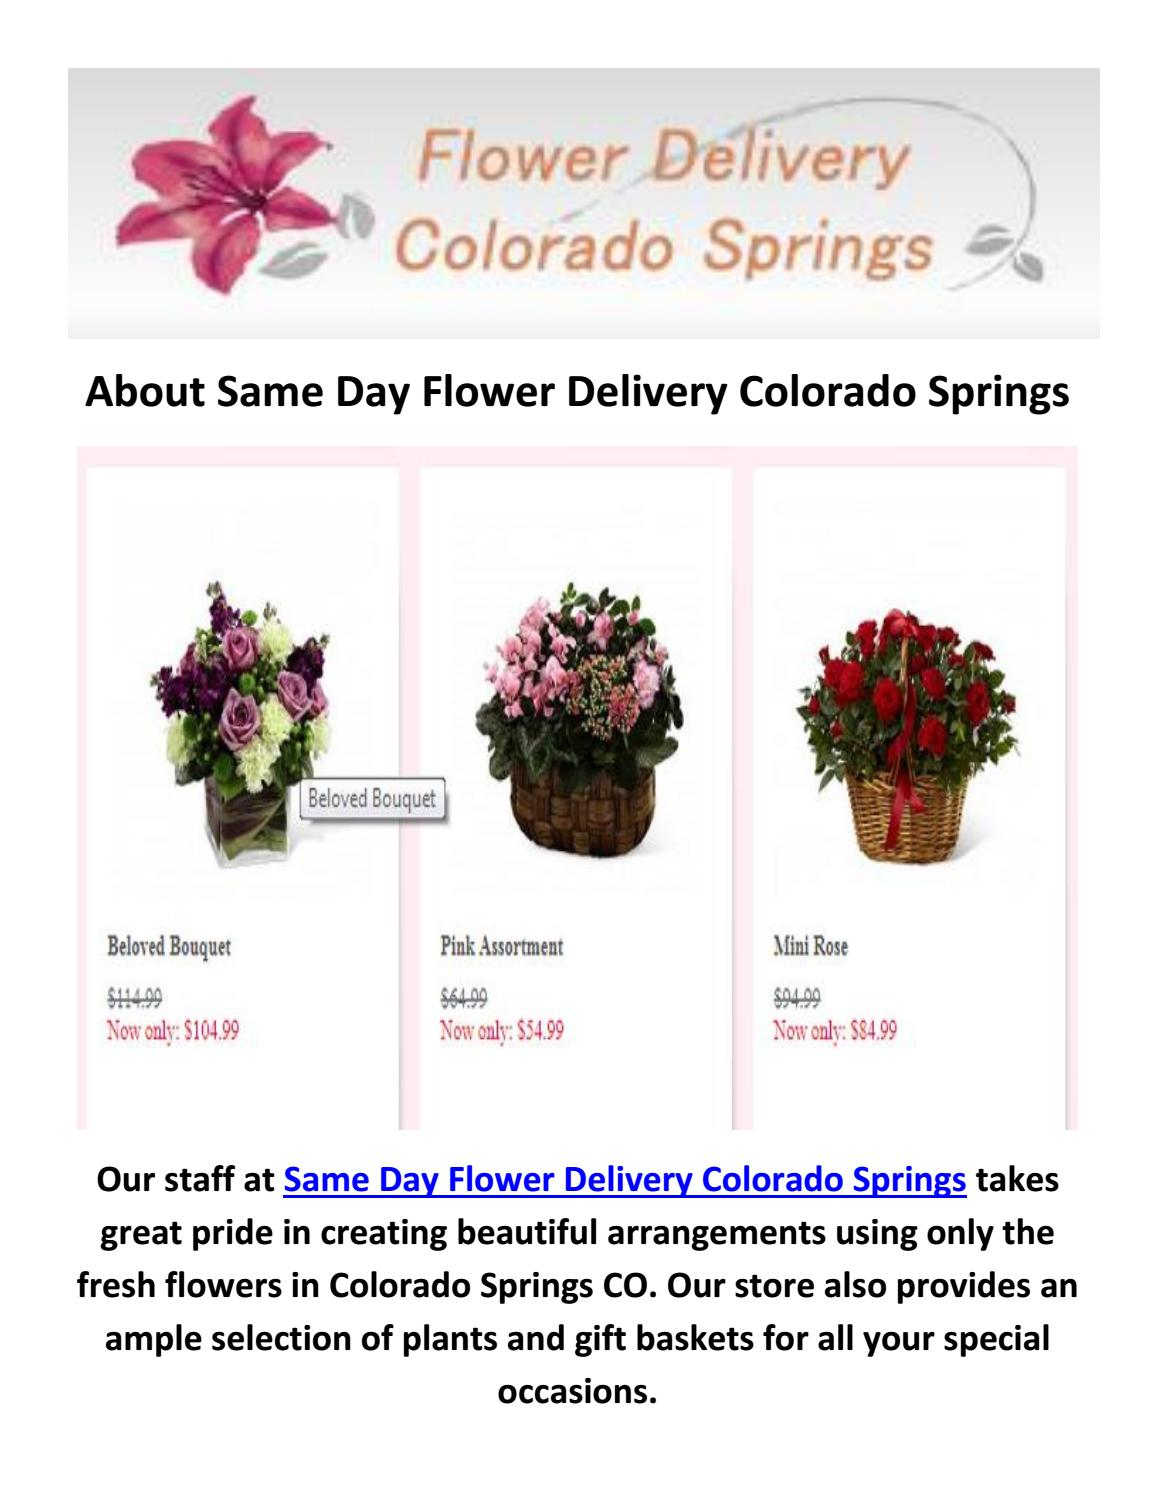 Call 719 602 6128 for flower delivery in colorado springs by call 719 602 6128 for flower delivery in colorado springs by same day flower delivery colorado springs issuu mightylinksfo